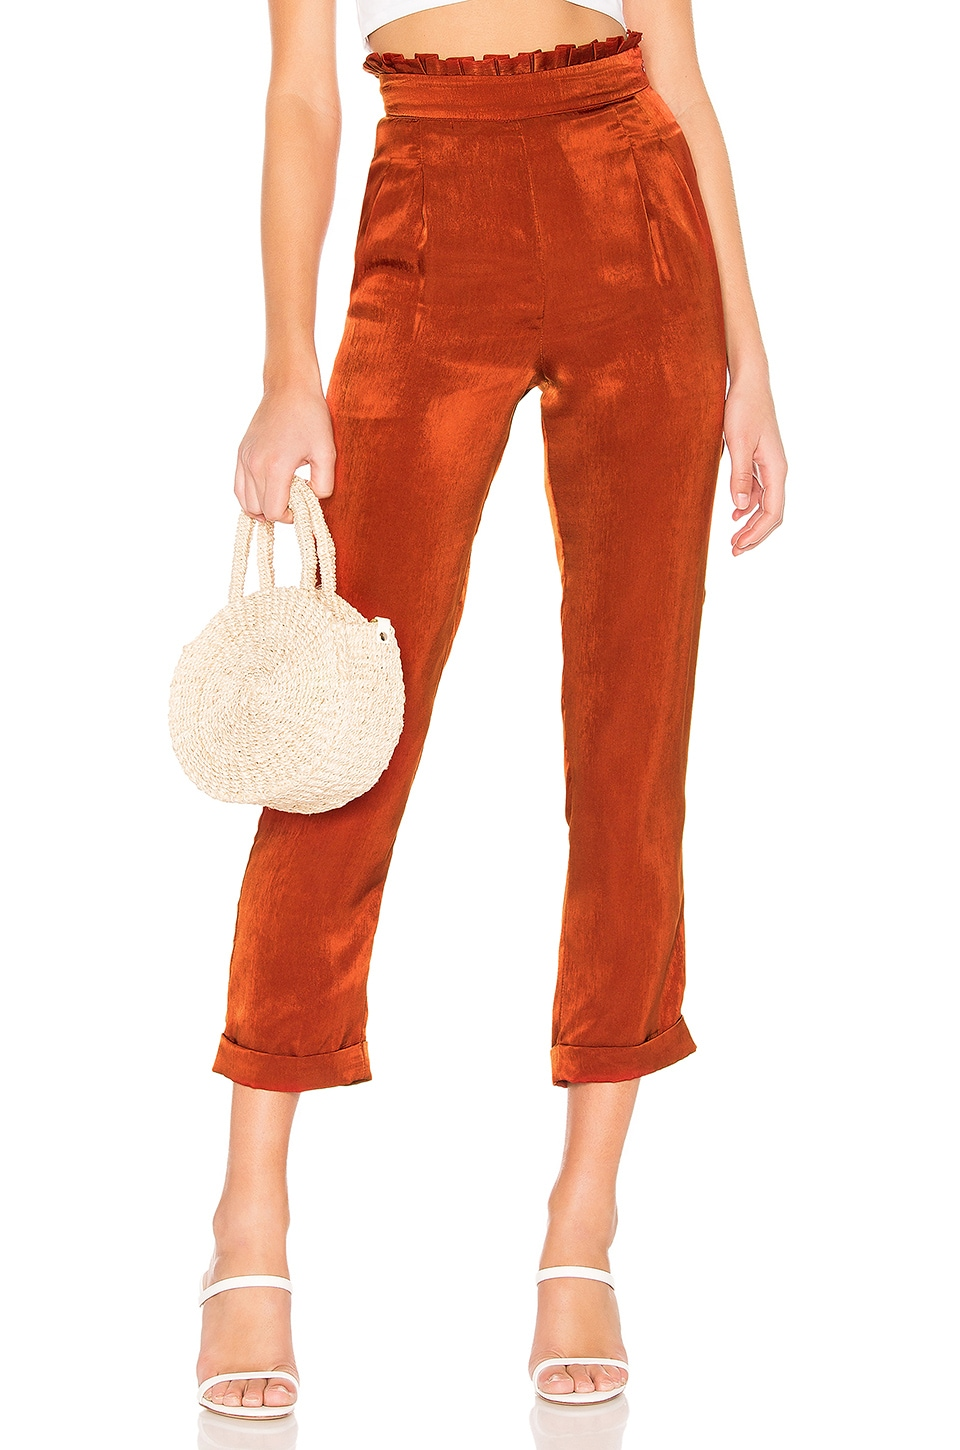 MAJORELLE Amali Pants in Brick